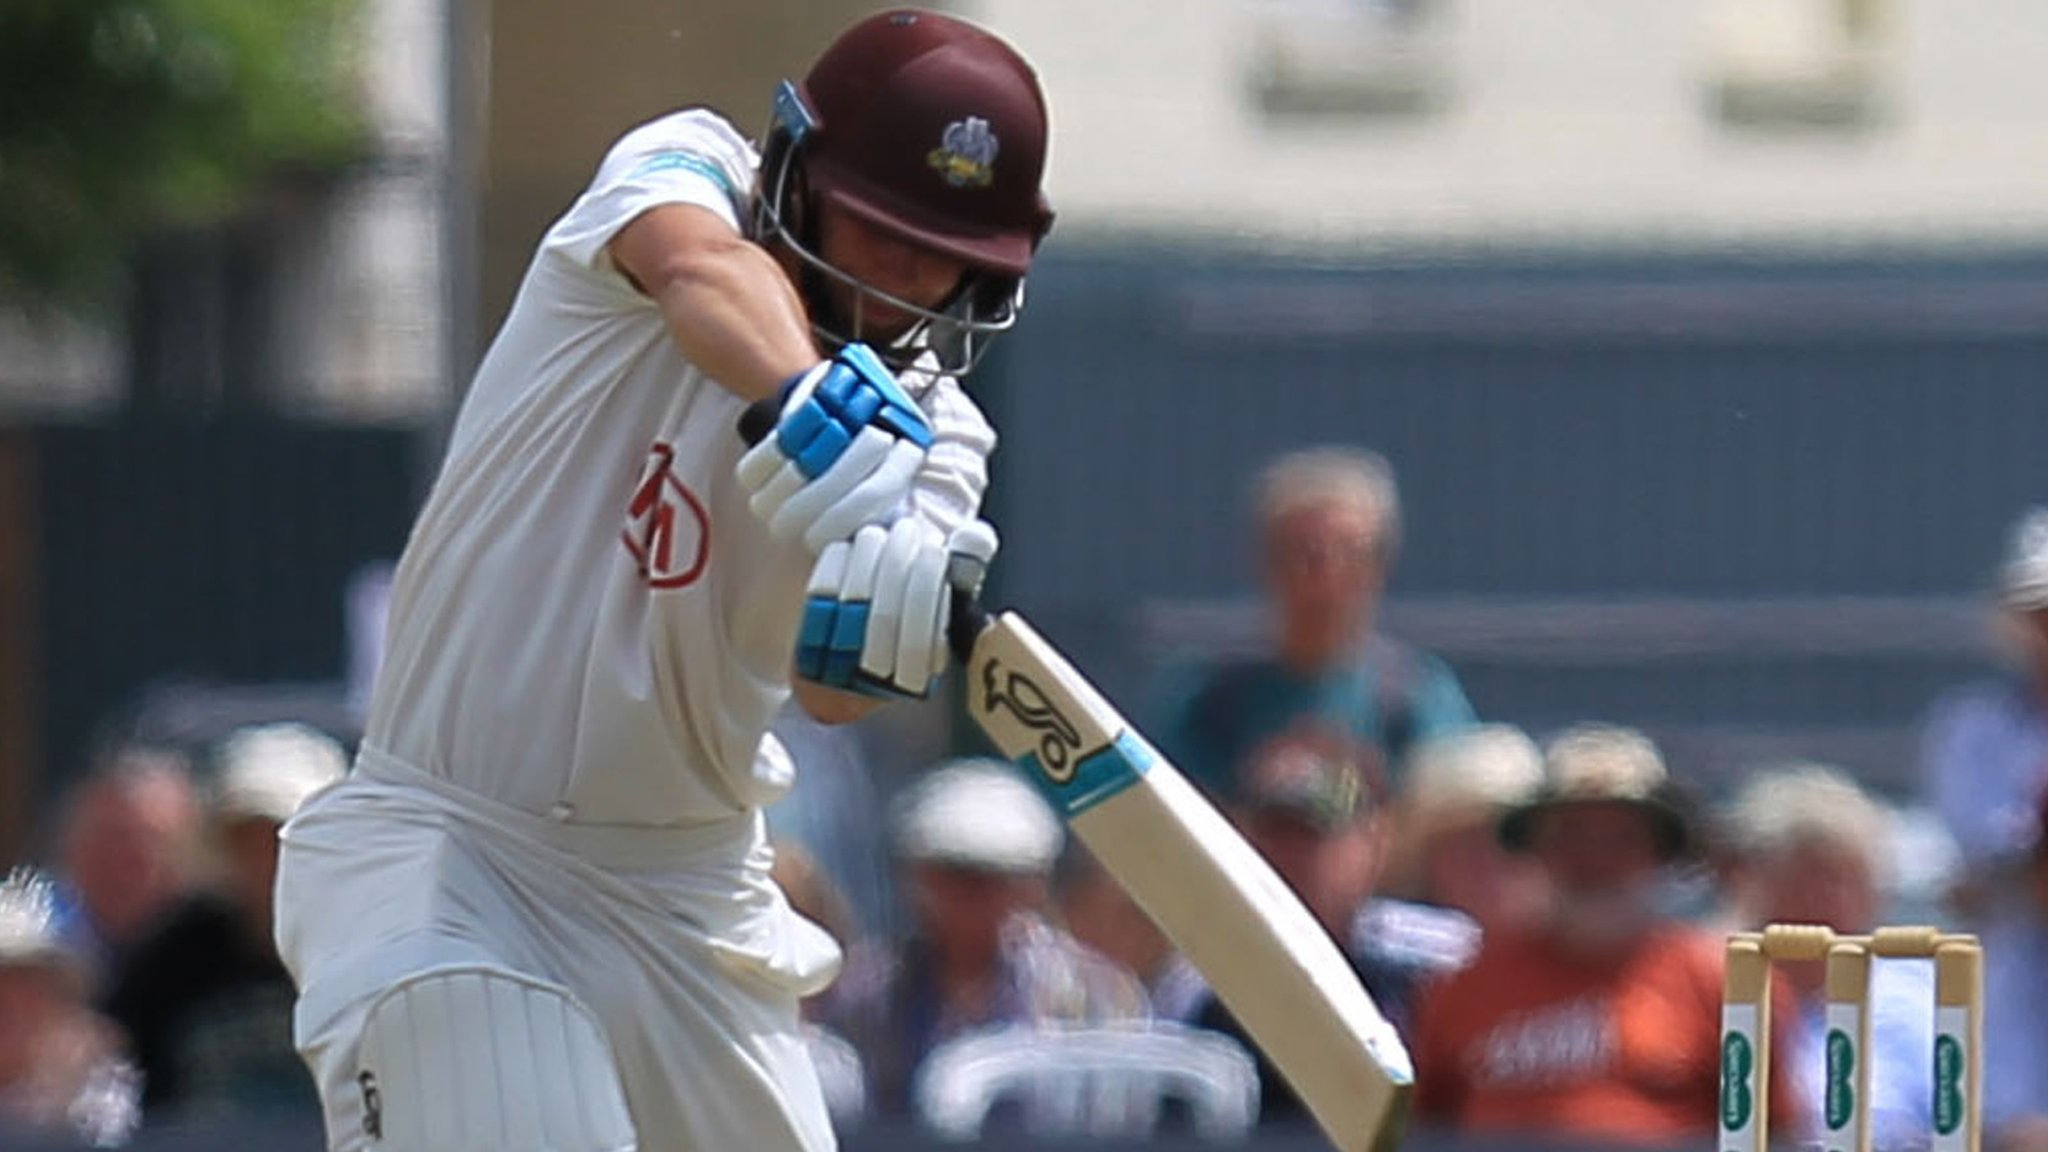 County Championship: Surrey make good start against Somerset | BBC